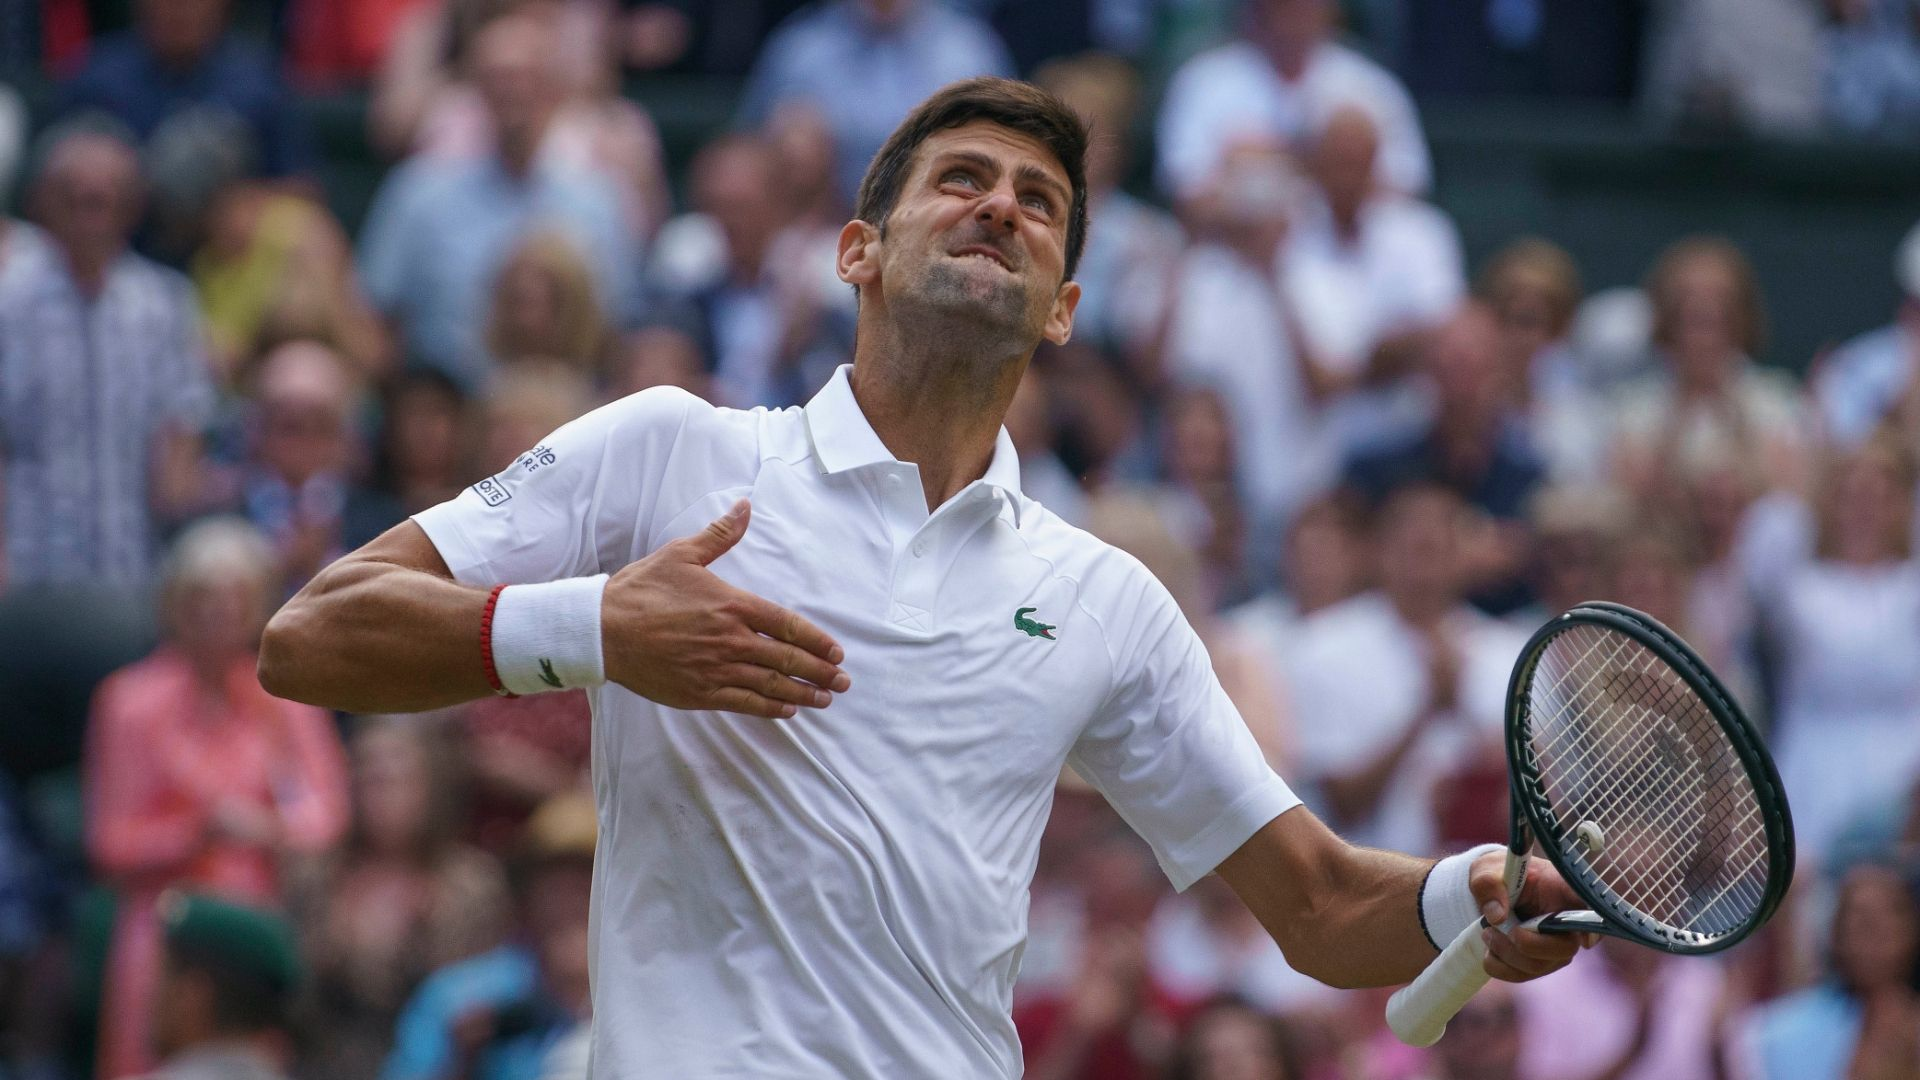 Djokovic beats Federer in epic Wimbledon final: How the sports world reacted